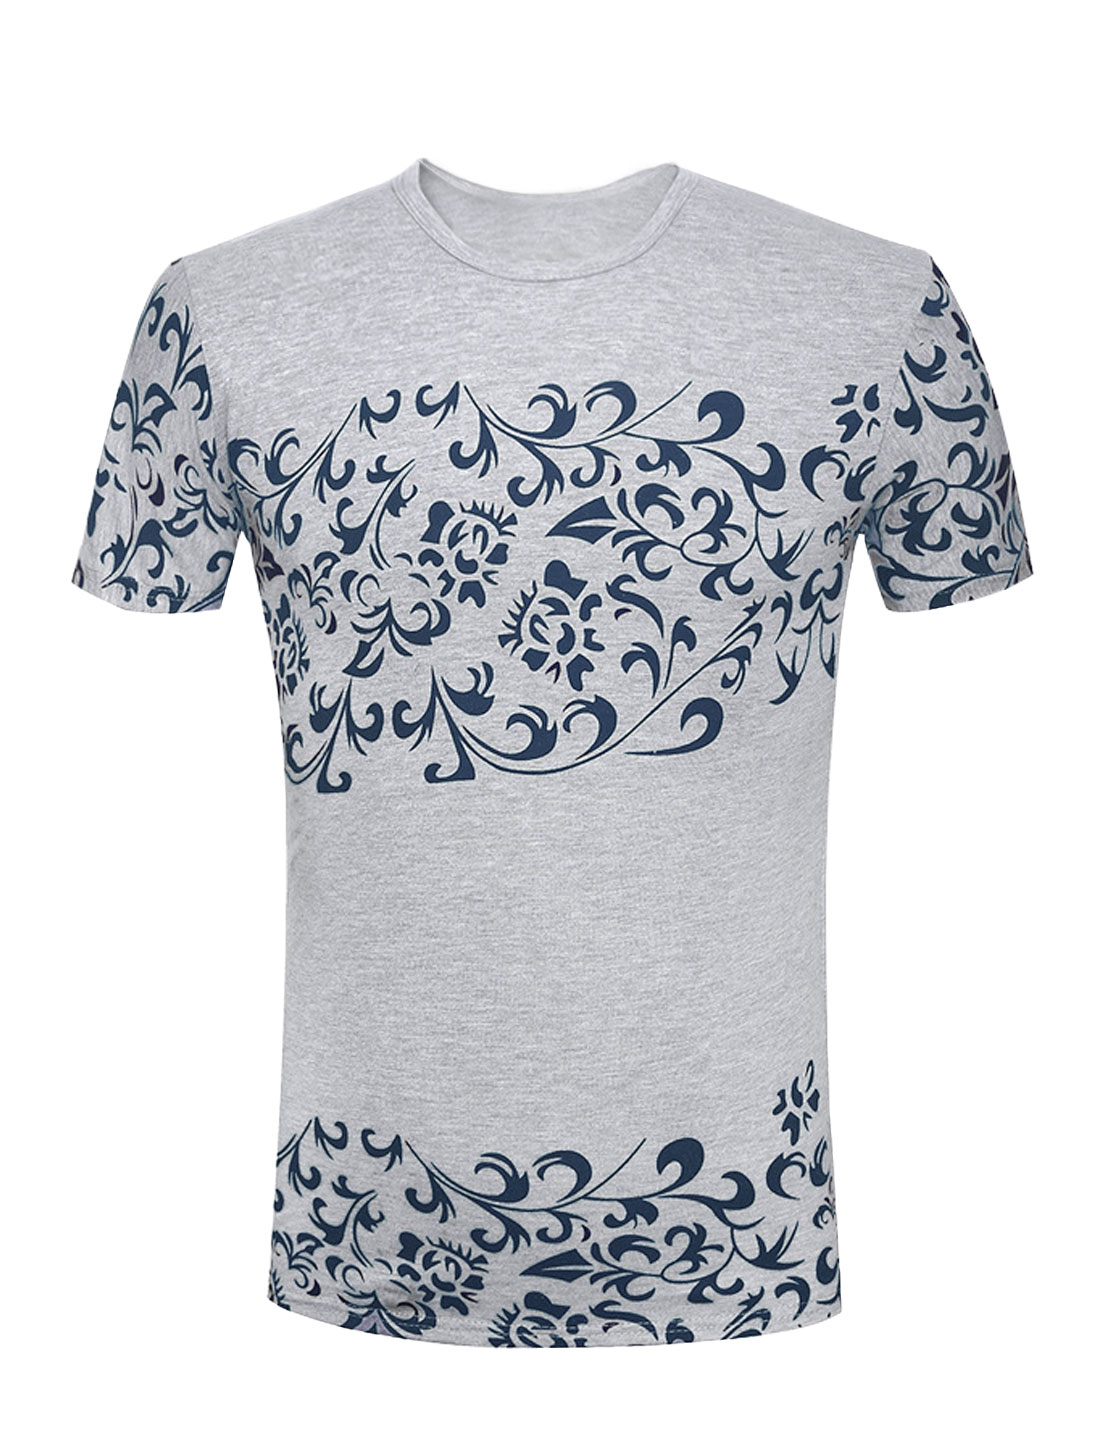 Men Floral Prints Well-fitting Short Sleeves T-shirt Light Grays M